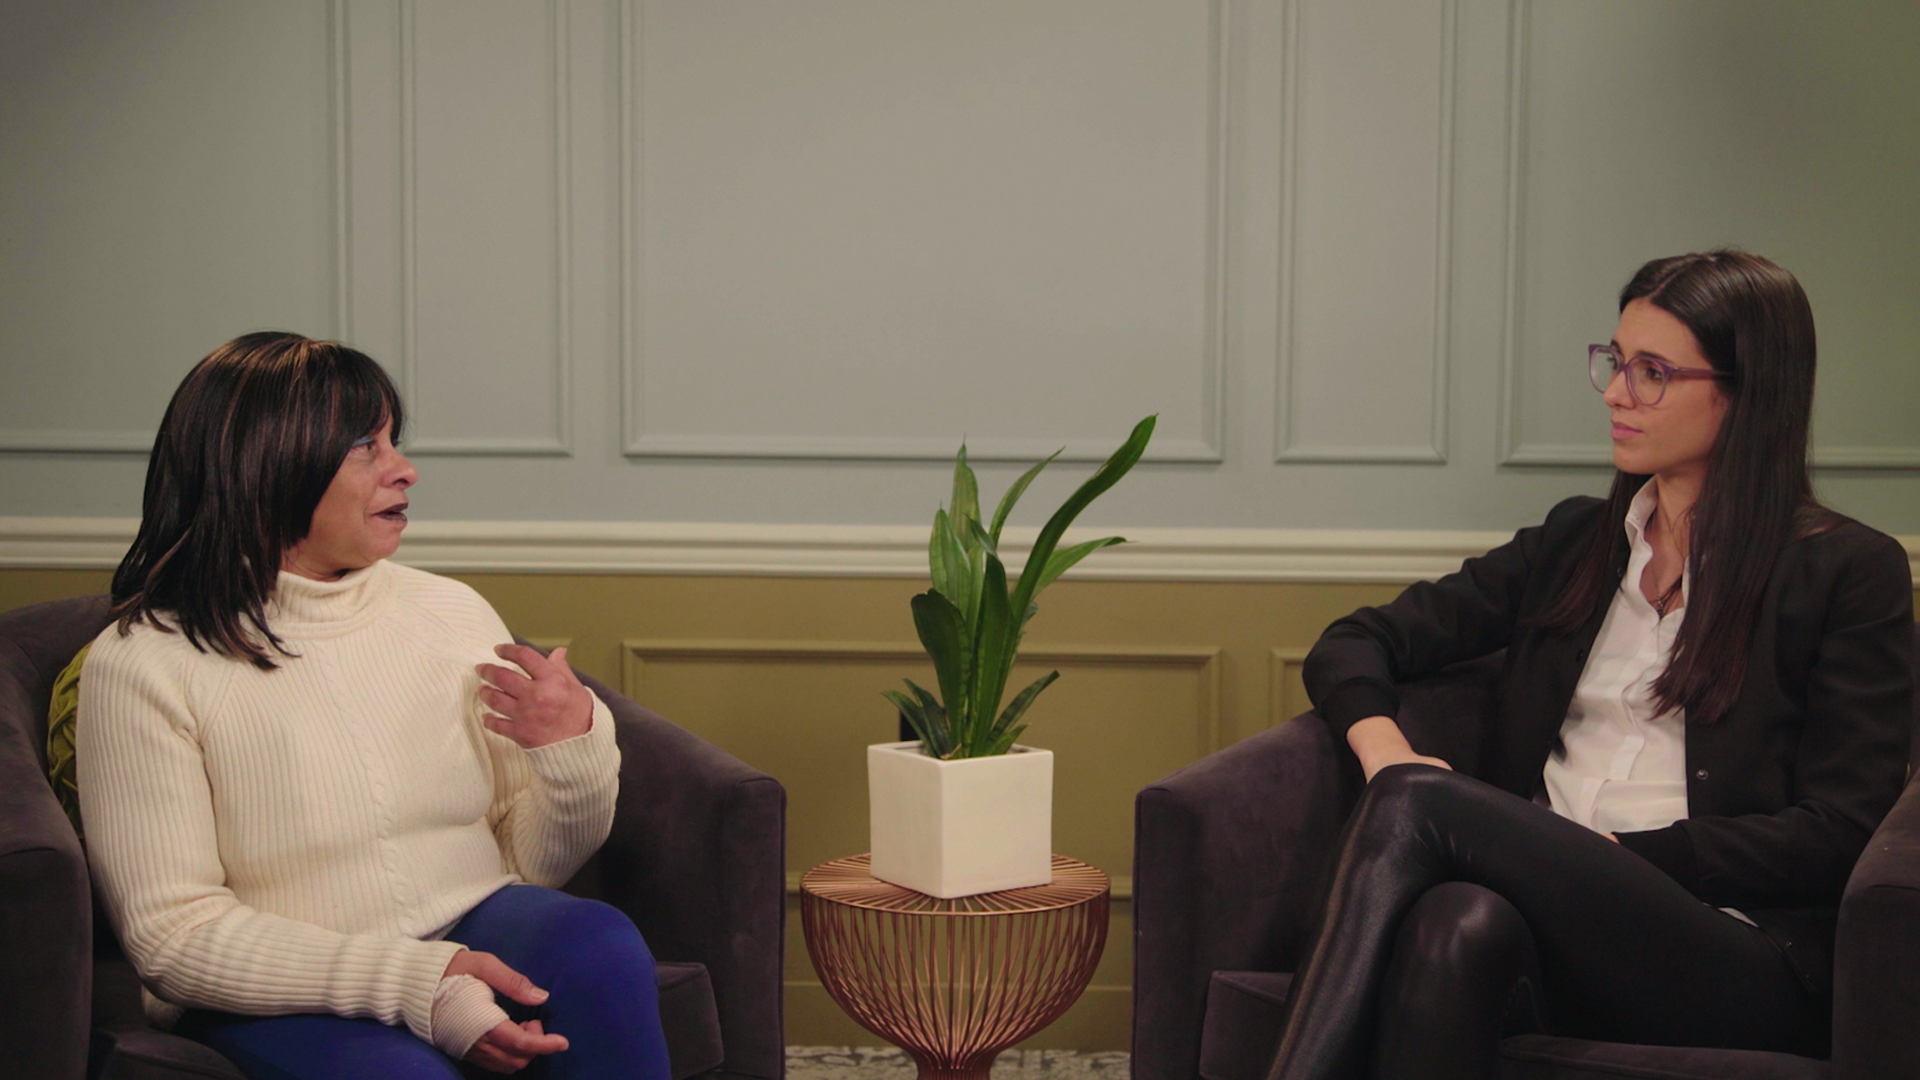 Liz Plank sits down with Valerie Seeley, an incarcerated women's activist